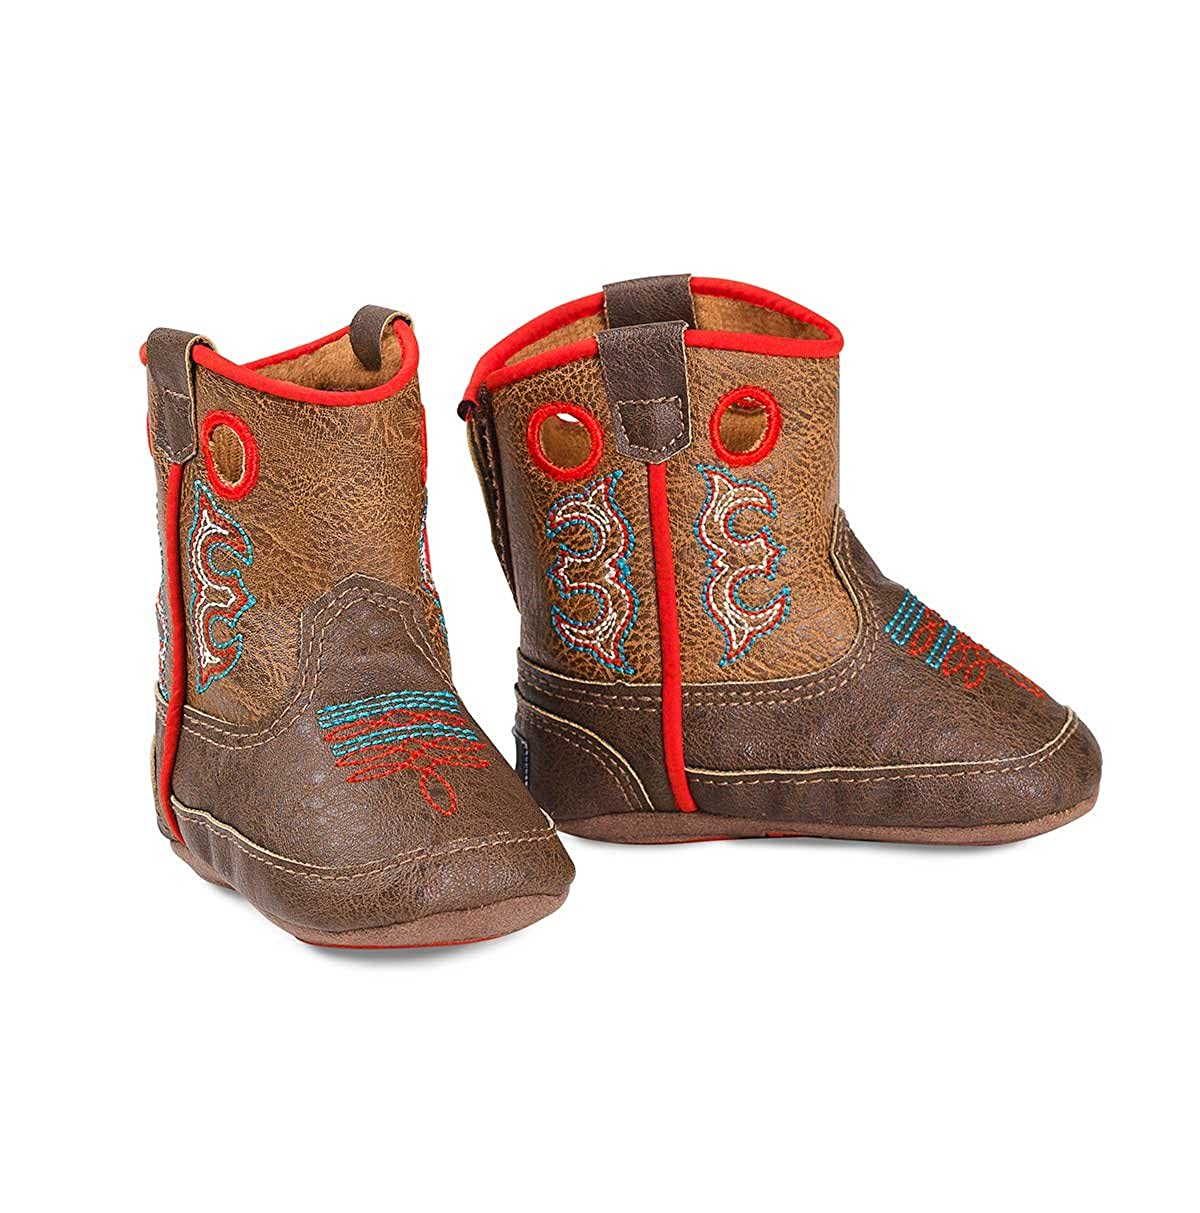 Dbl Barrel Baby Buckers Infant Boy Kolter Boot/ BROWN 1 Brown w//Red Trim